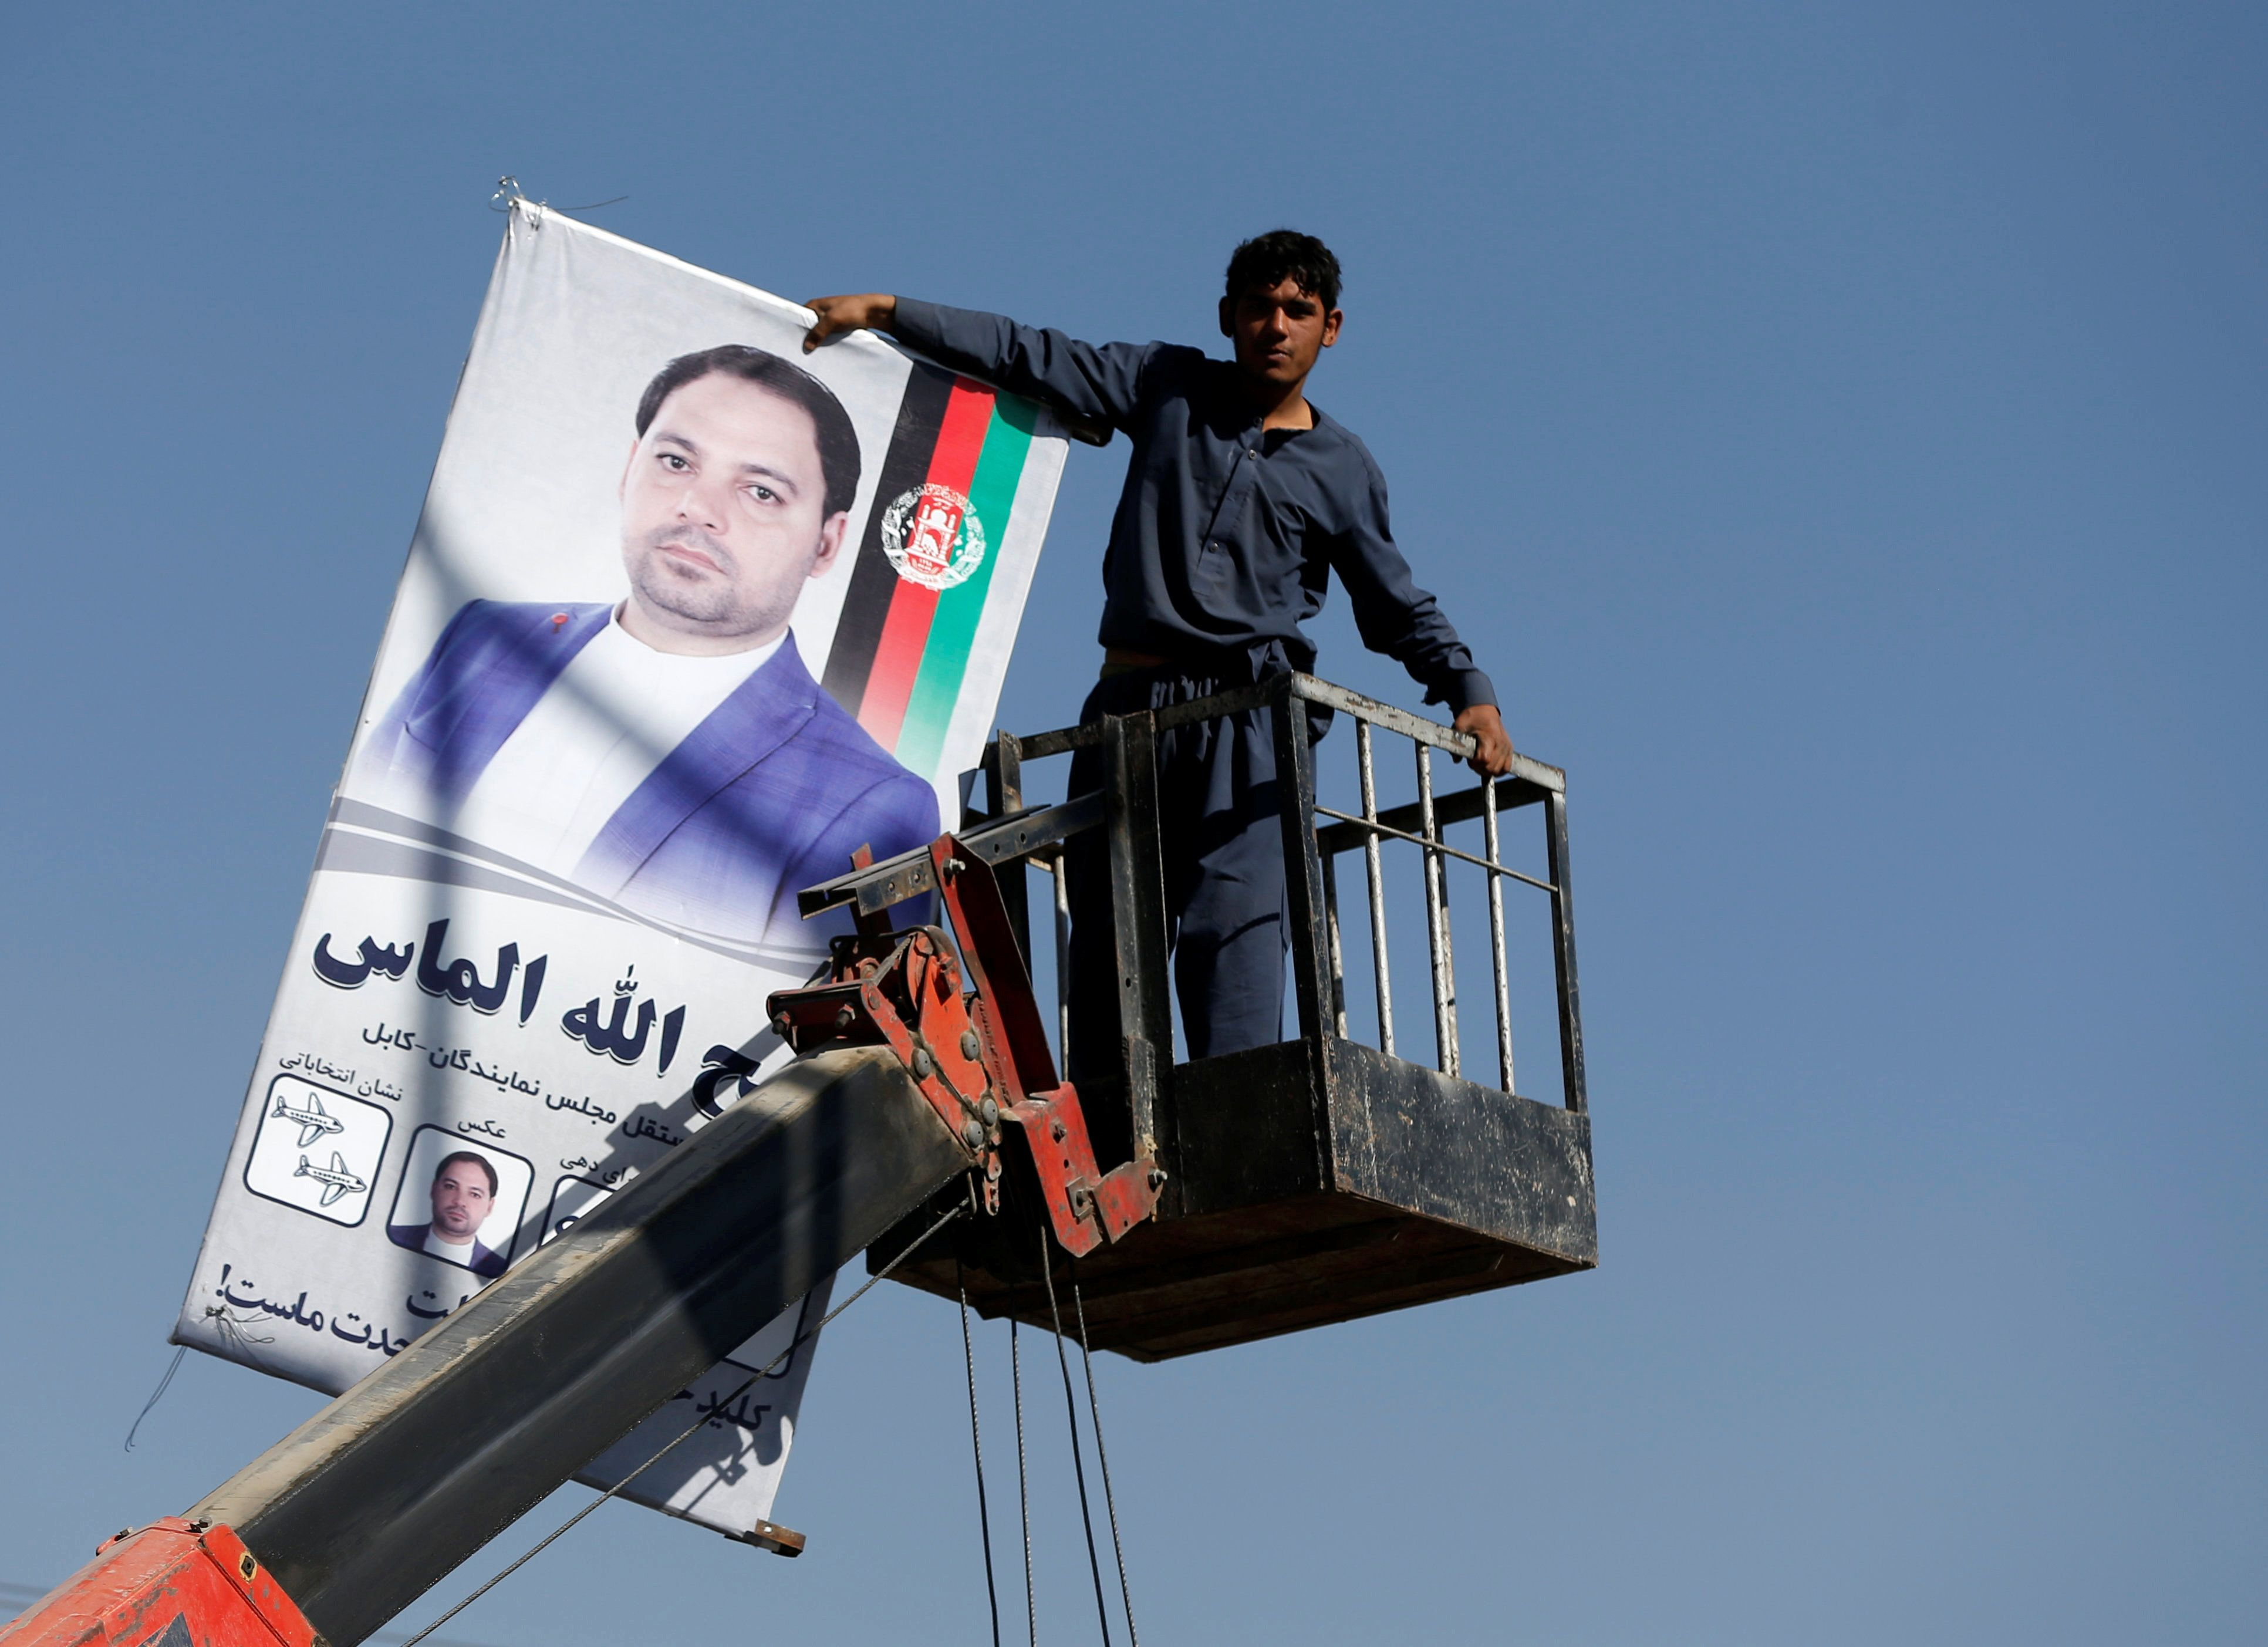 AFGHANISTAN'S ELECTION: A PIVOTAL MOMENT?